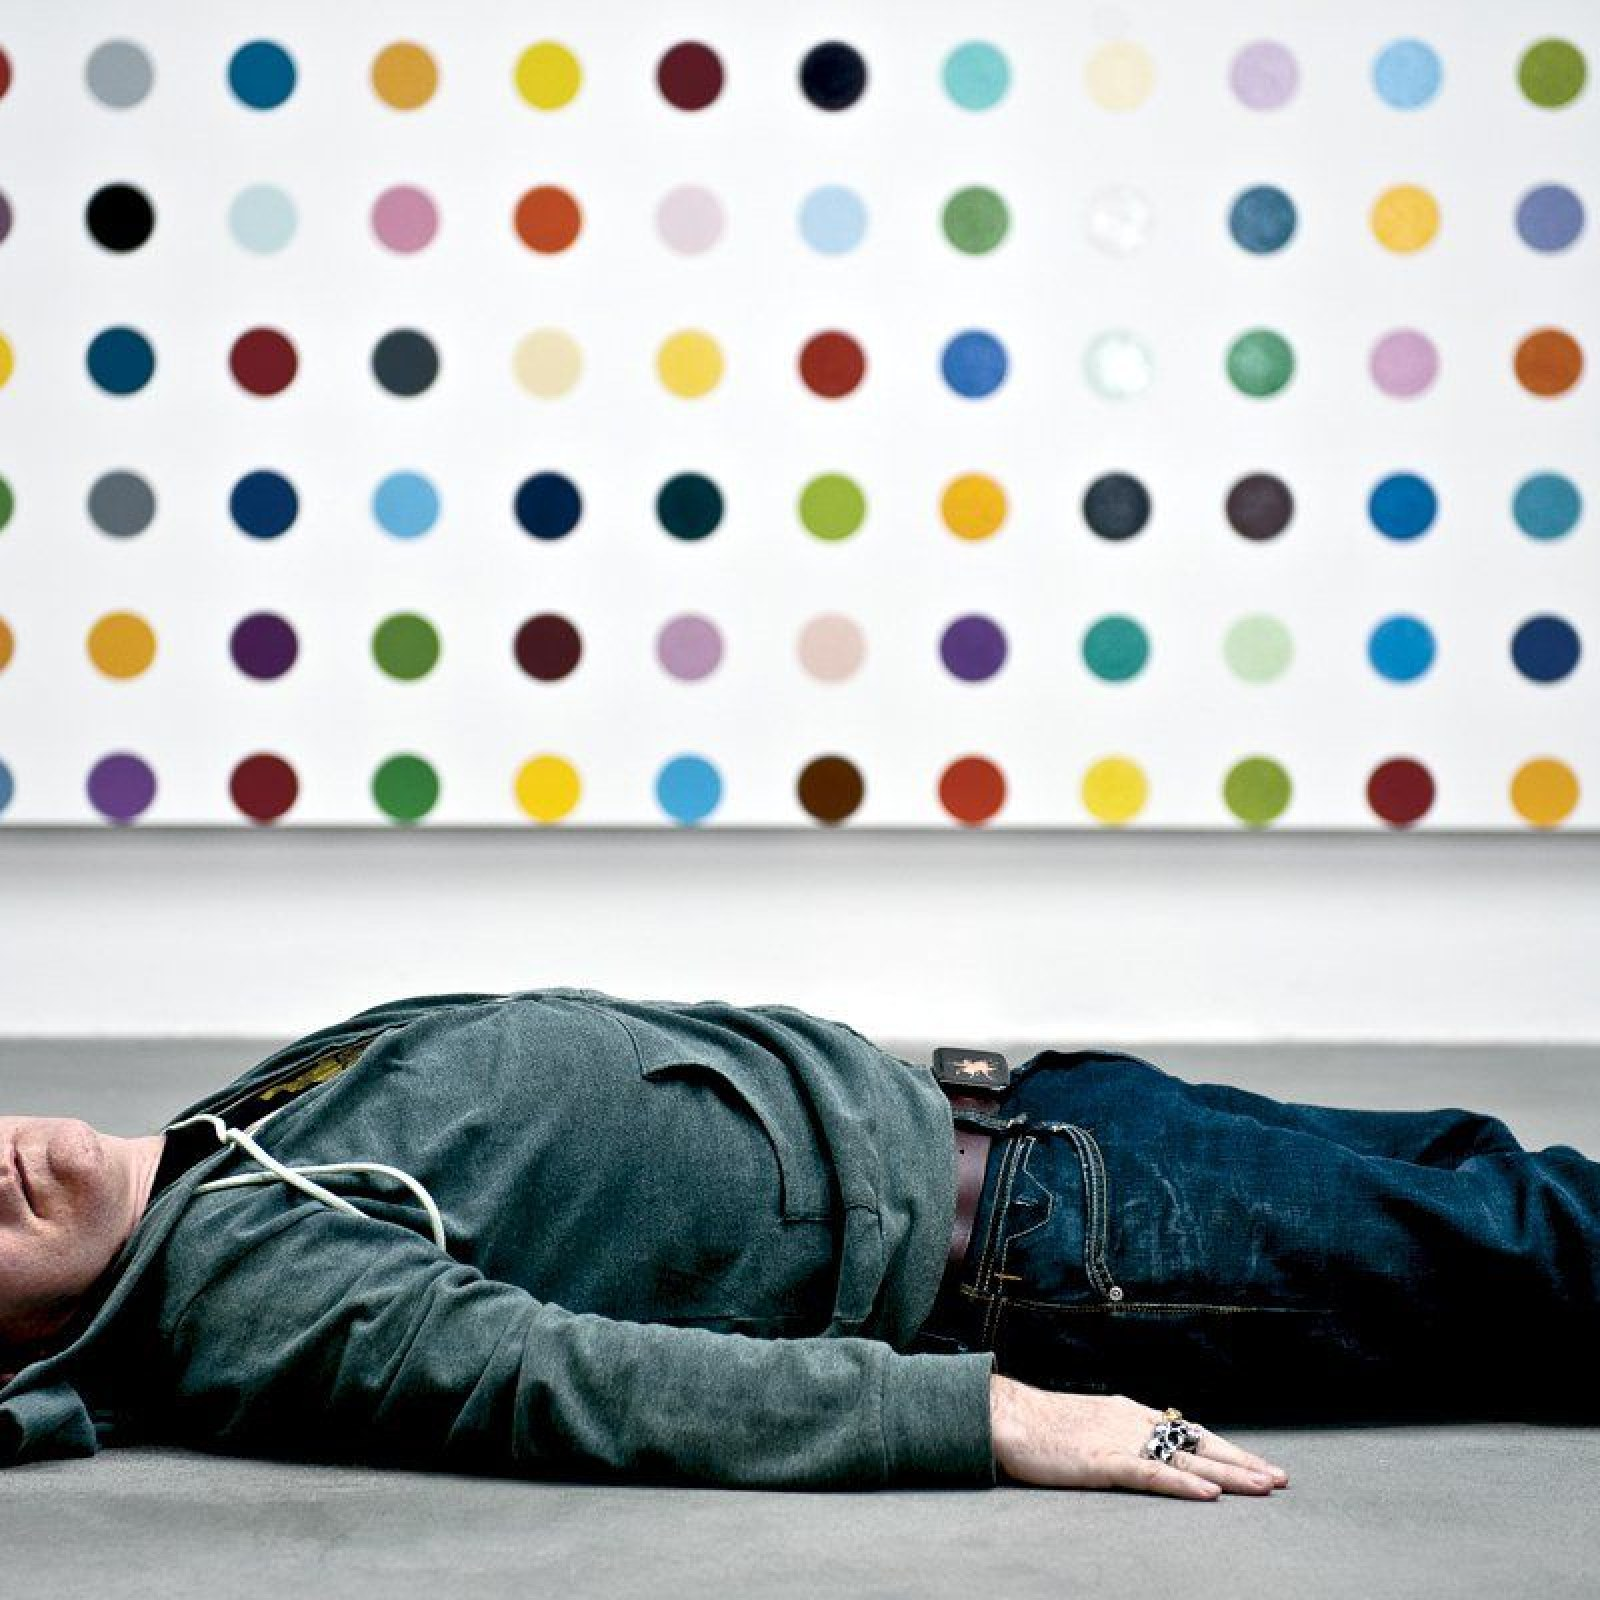 Damien Hirst S Spot Paintings Take Over The World